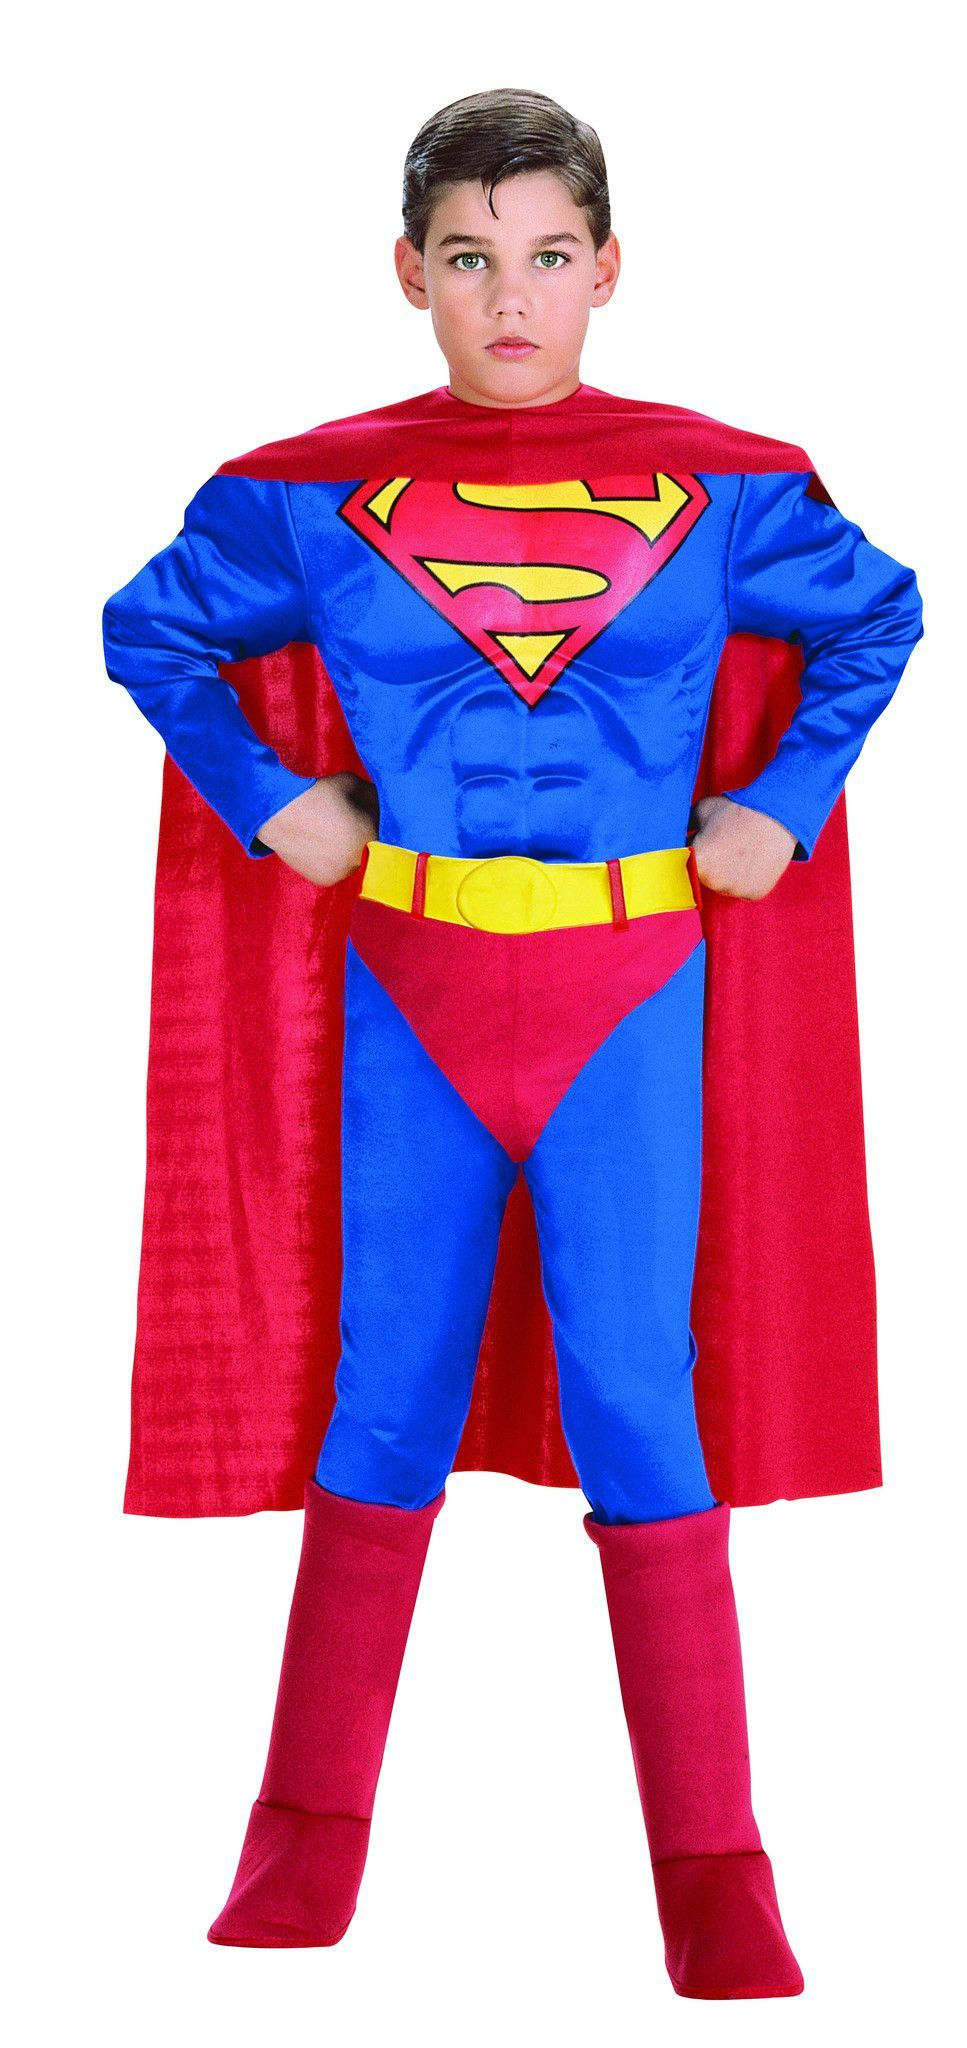 7e00ed7f Superman-Deluxe Muscle Chest Boy's Costume   Couple costumes ...